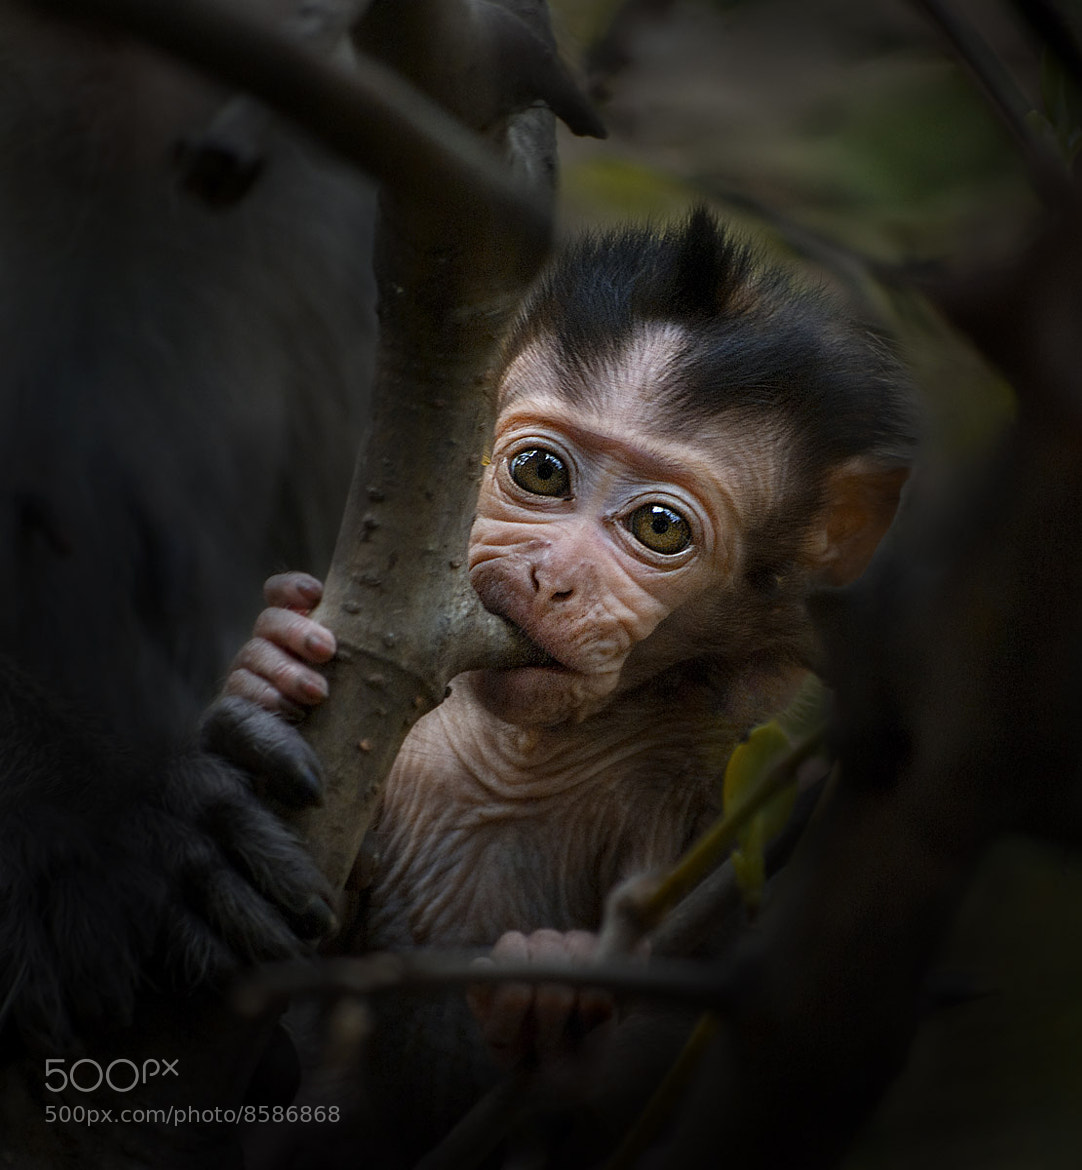 Photograph Monkey #2 by Saelan Wangsa on 500px